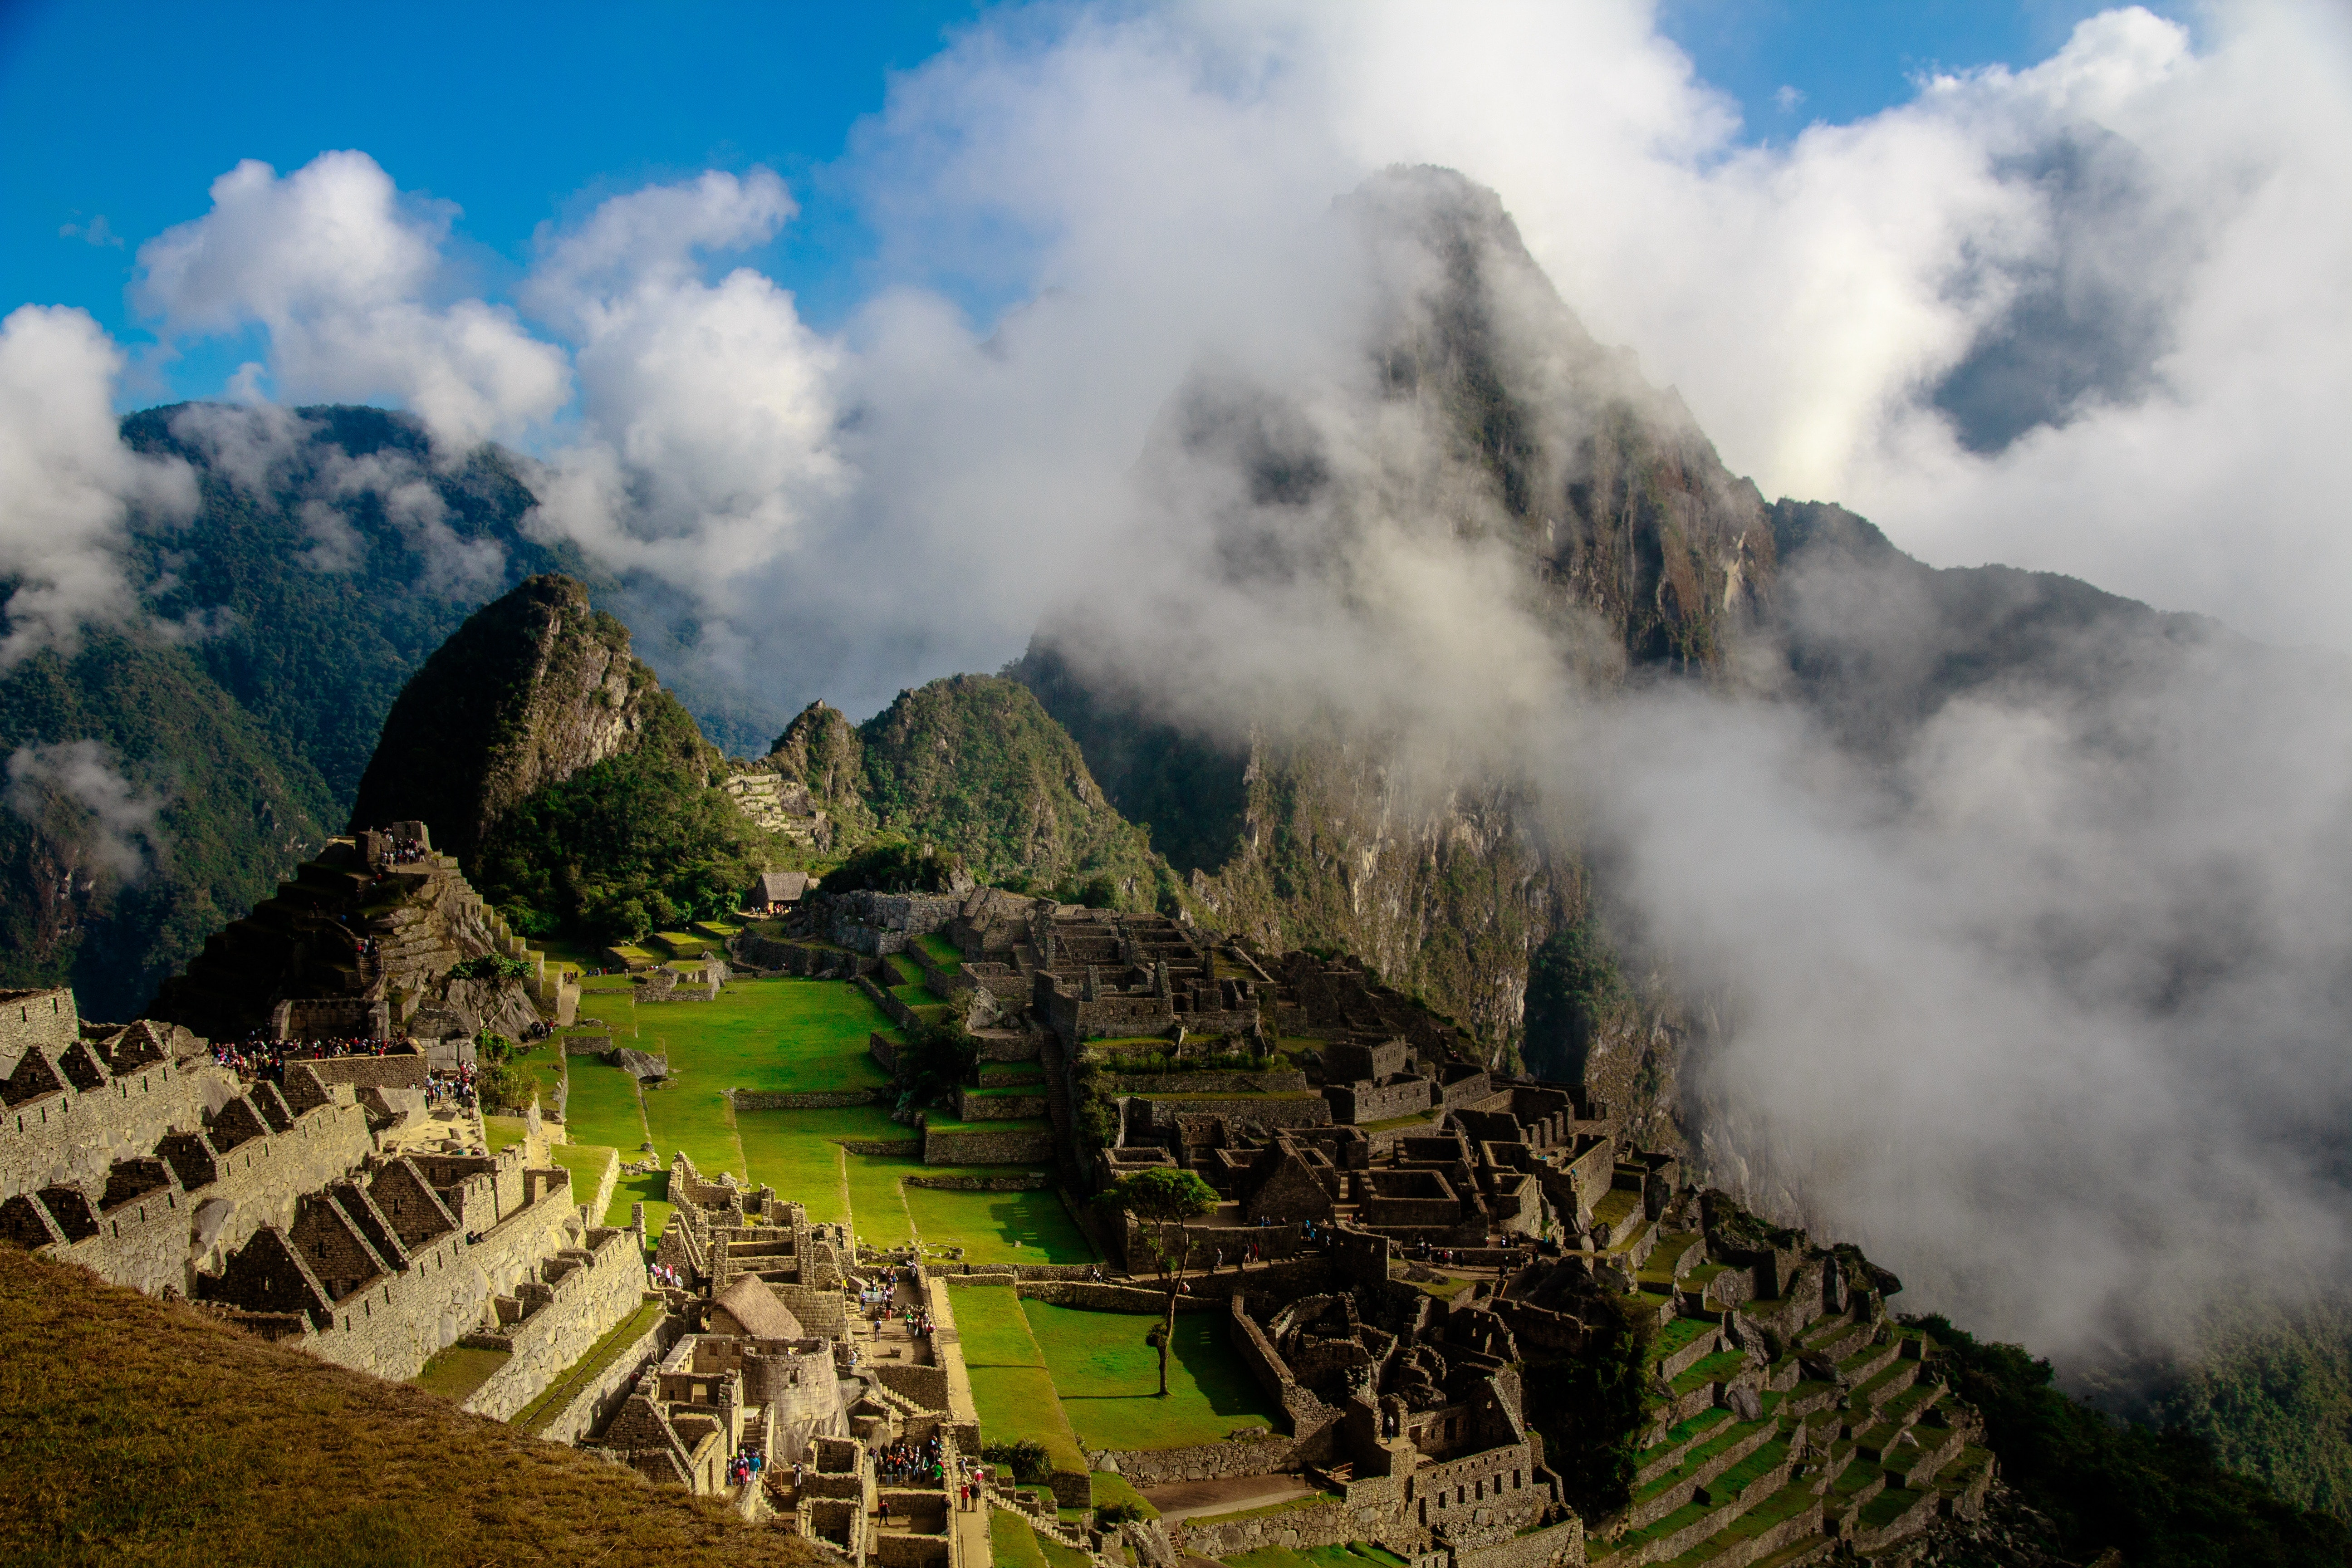 Group trips suit Aquarians well in 2019: Consider surrounding yourself with like-minded people on an adventure to Machu Picchu.